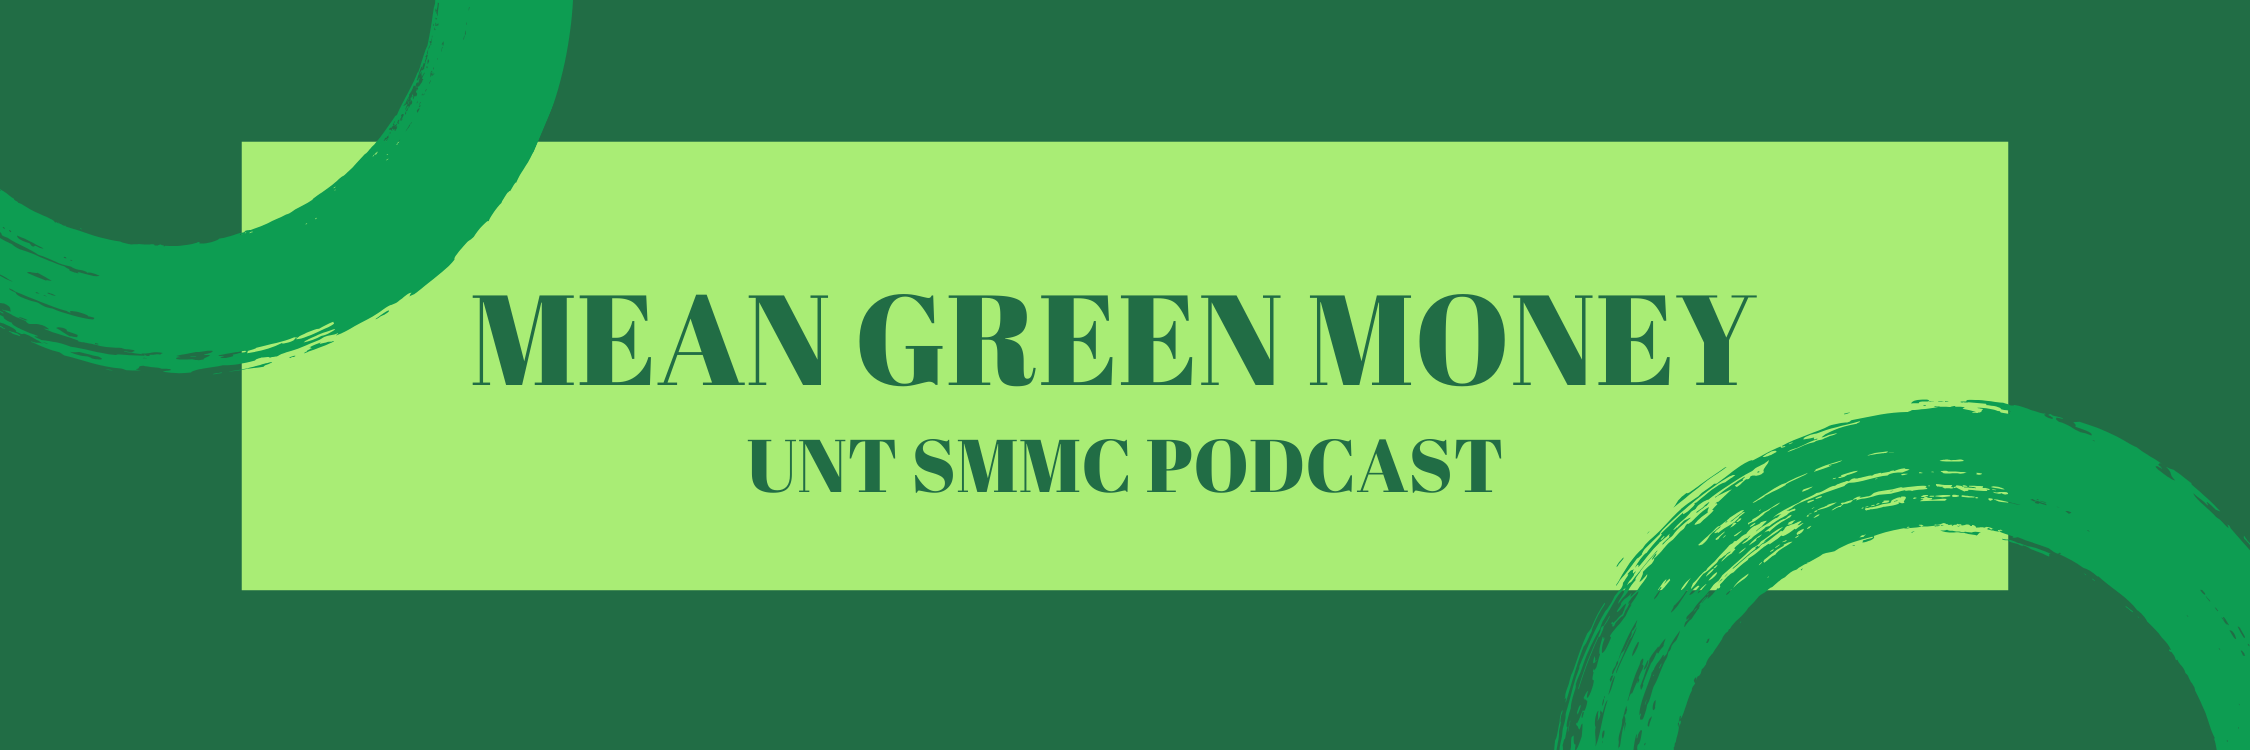 Mean Green Money UNT SMMC Podcast